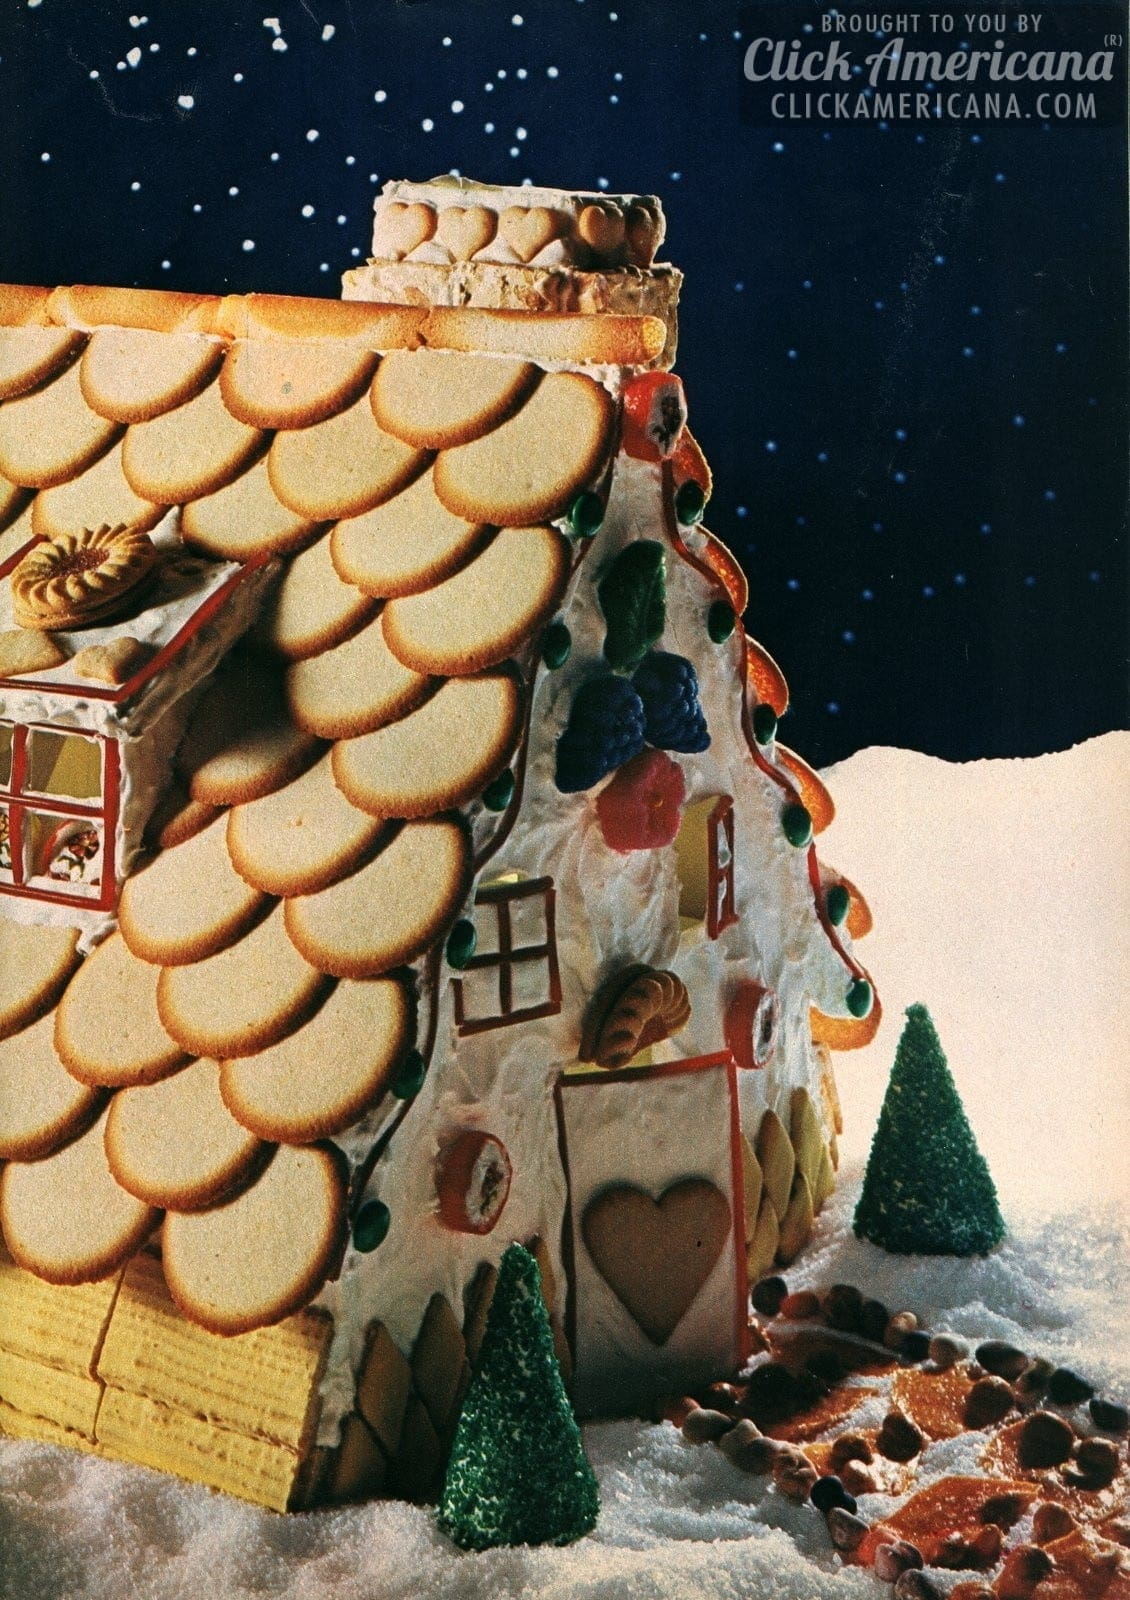 Make a cookie house for Christmas (1967)